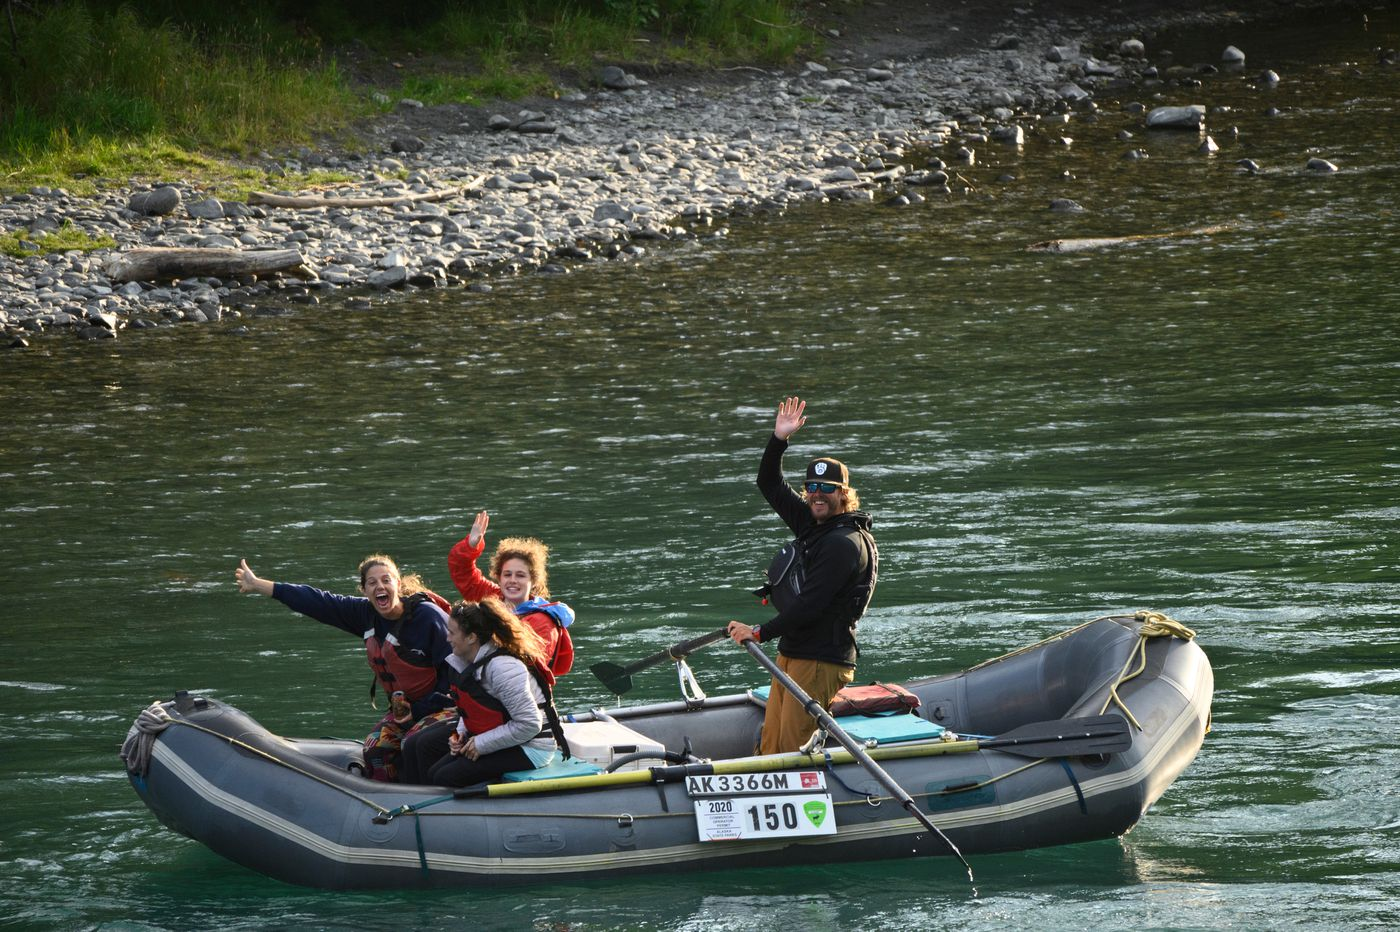 Rafters show excitement after spotting bears during their float on the Kenai River on July 30, 2020. From left are Sami Lucci of Richmond, Virginia, Sarah Ross and Kirsten Baker, both from Denver. Austin Klopstein of Alaska River Adventures guides the float. (Marc Lester / ADN)